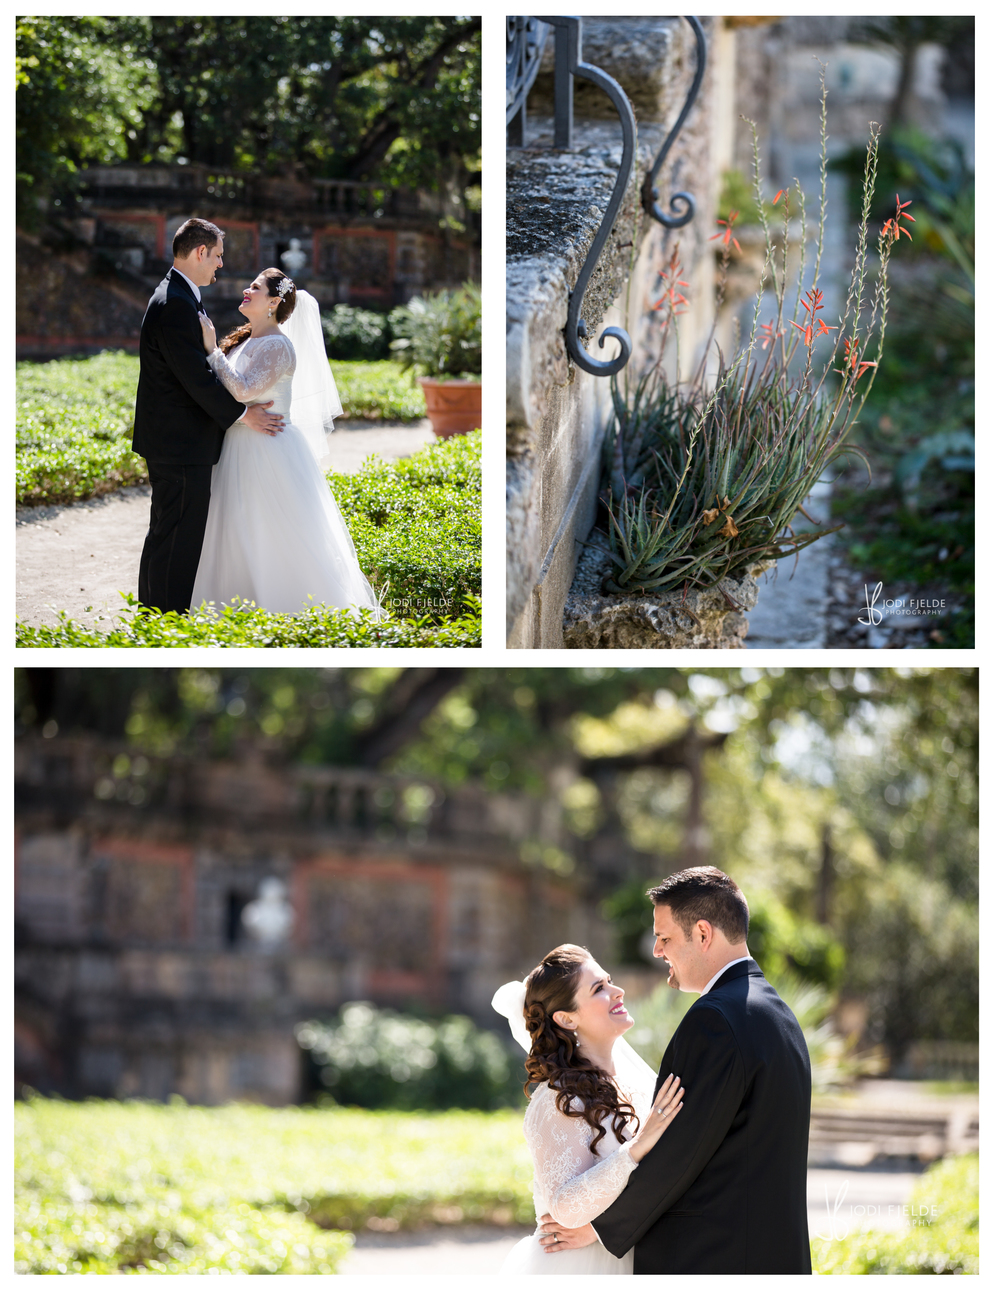 Vizcaya_Miami_Florida_Bridal_Wedding_Portraits_Jodi_Fjelde_Photography-2.jpg